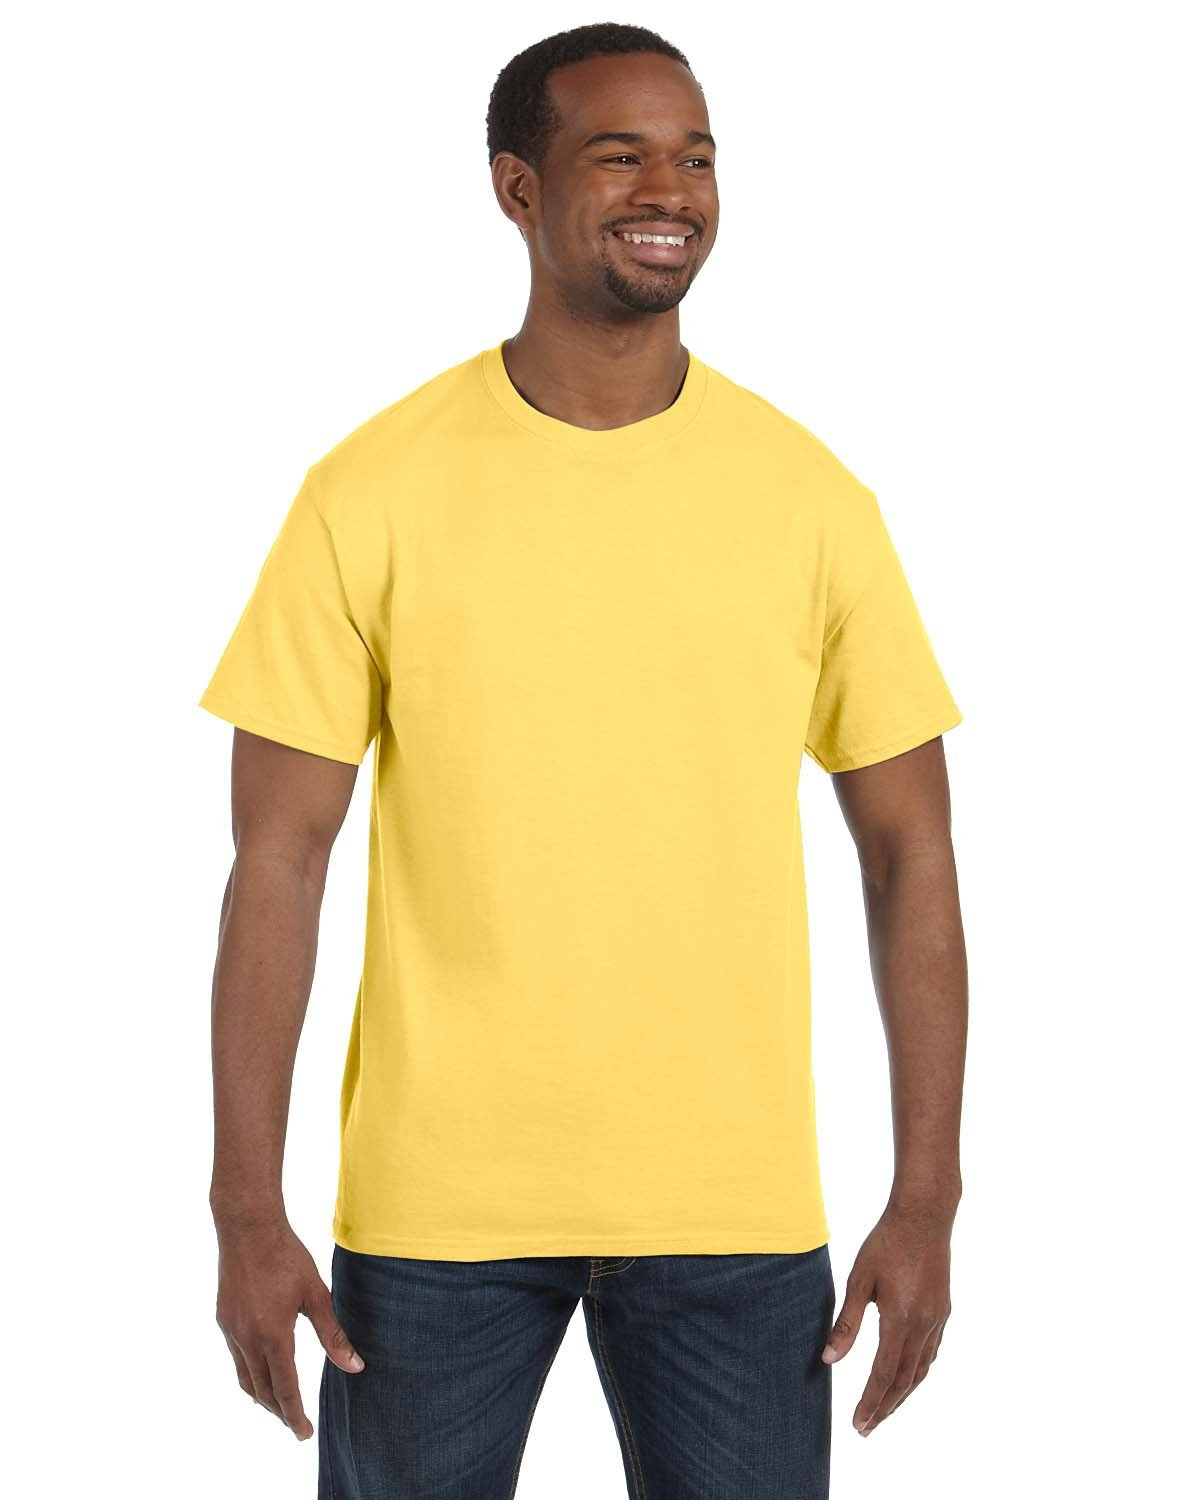 Hanes Men's Authentic-T T-Shirt DAFFODIL YELLOW